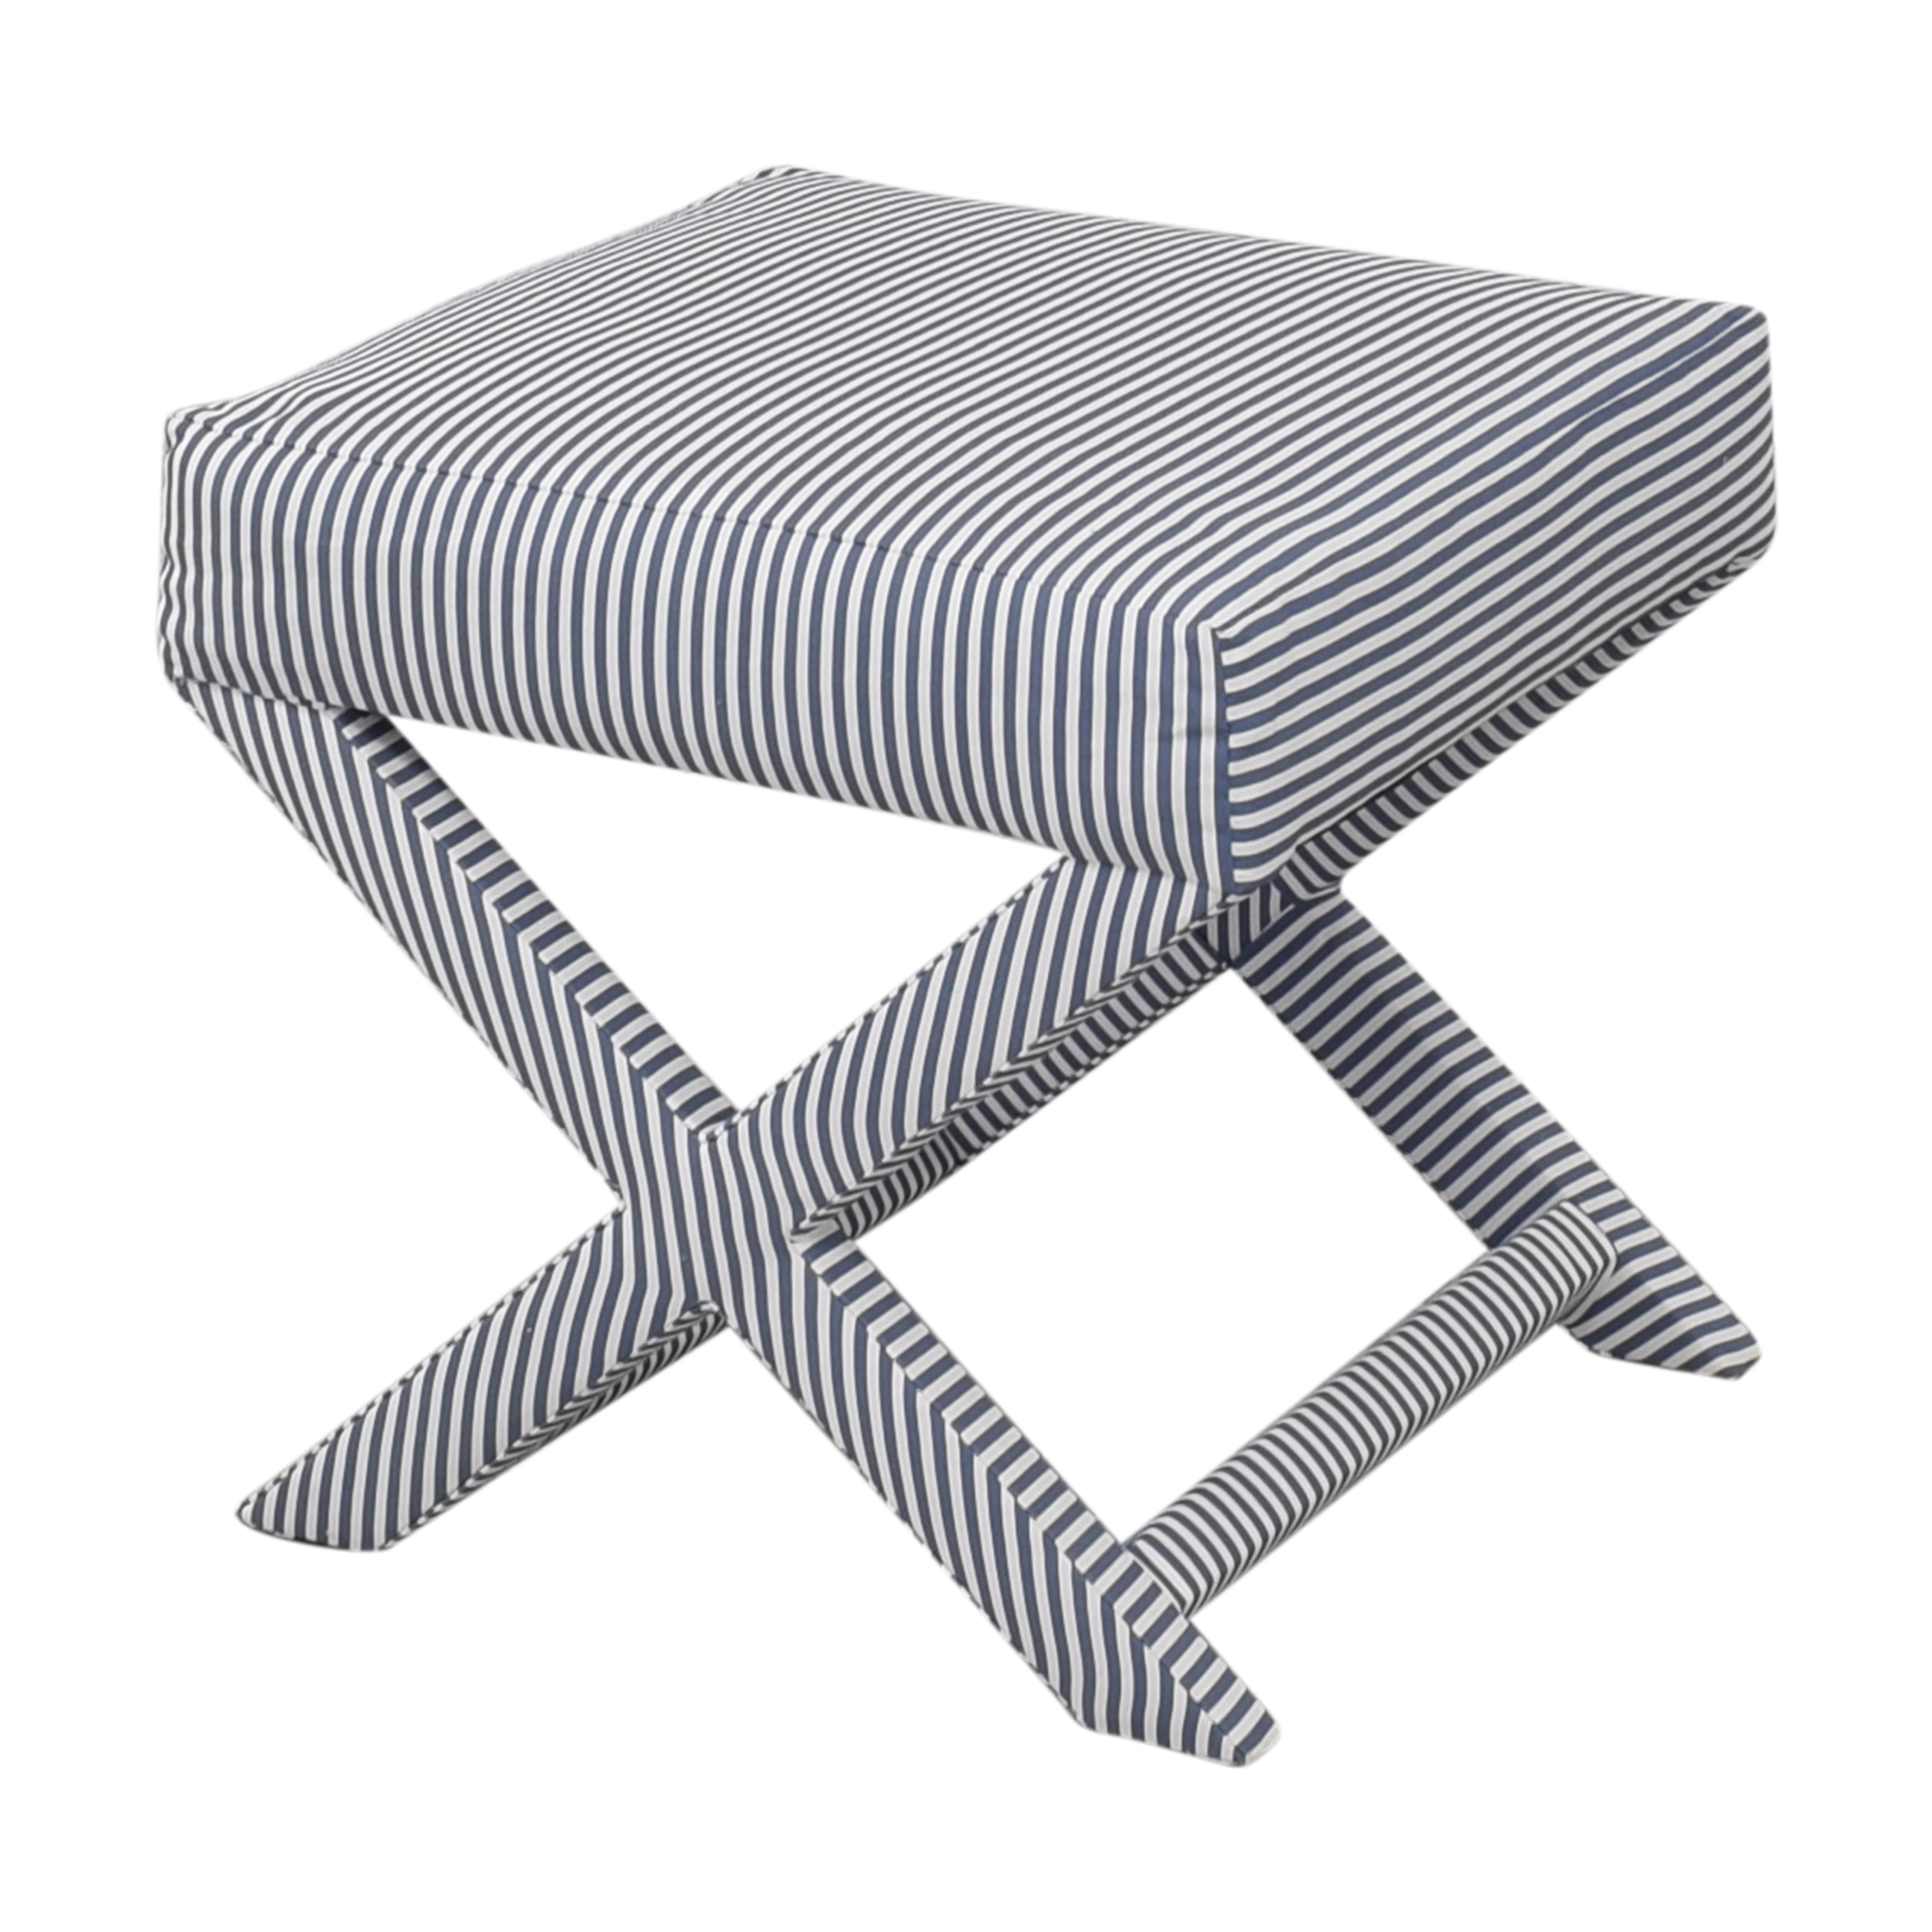 The Inside The inside Ticking Stripe X Bench for sale